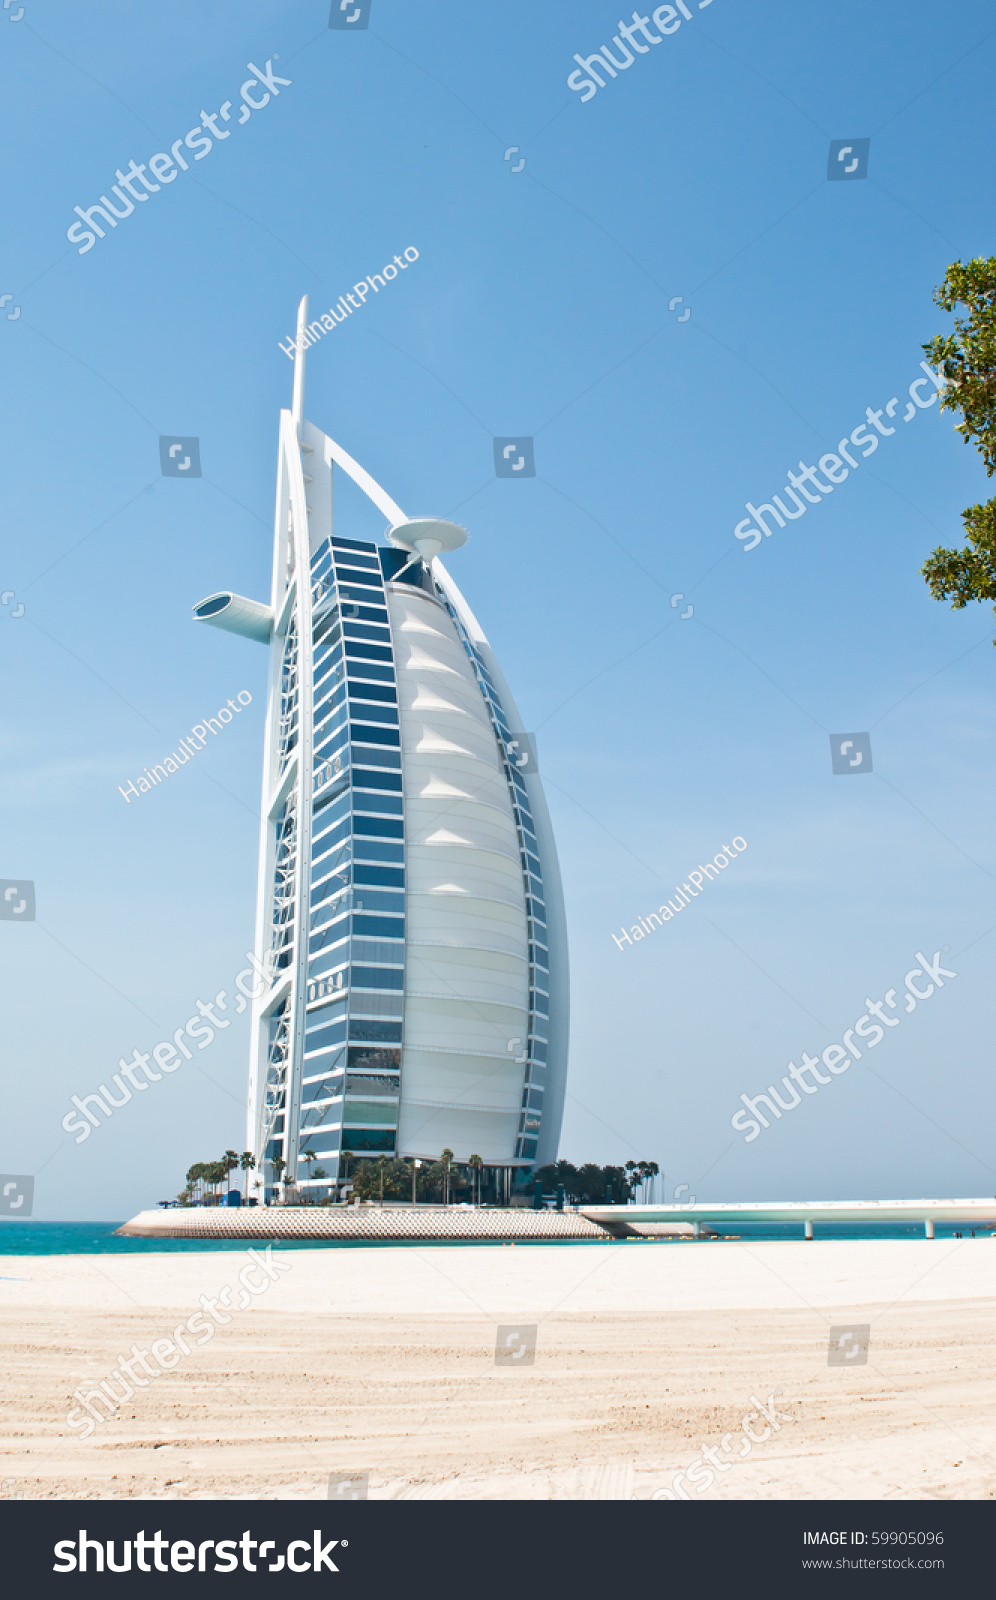 Dubai uae april 05 grand sail stock photo 59905096 for The sail hotel dubai